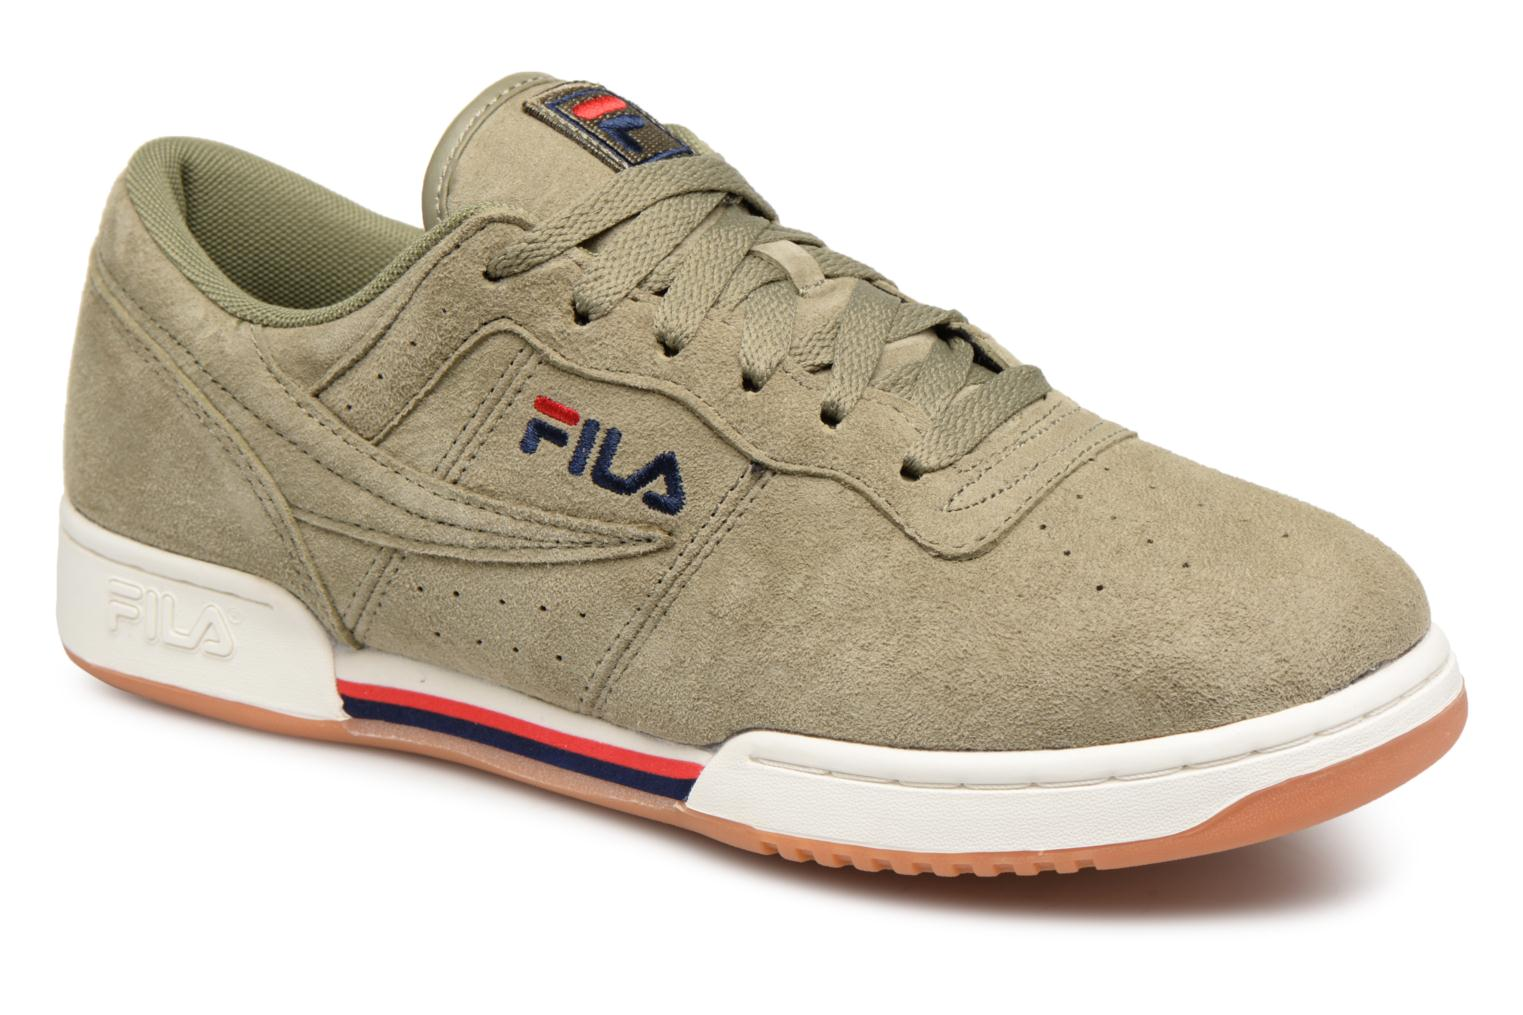 FILA Original Fitness chez S (Green) - Trainers chez Fitness (340271) b09627